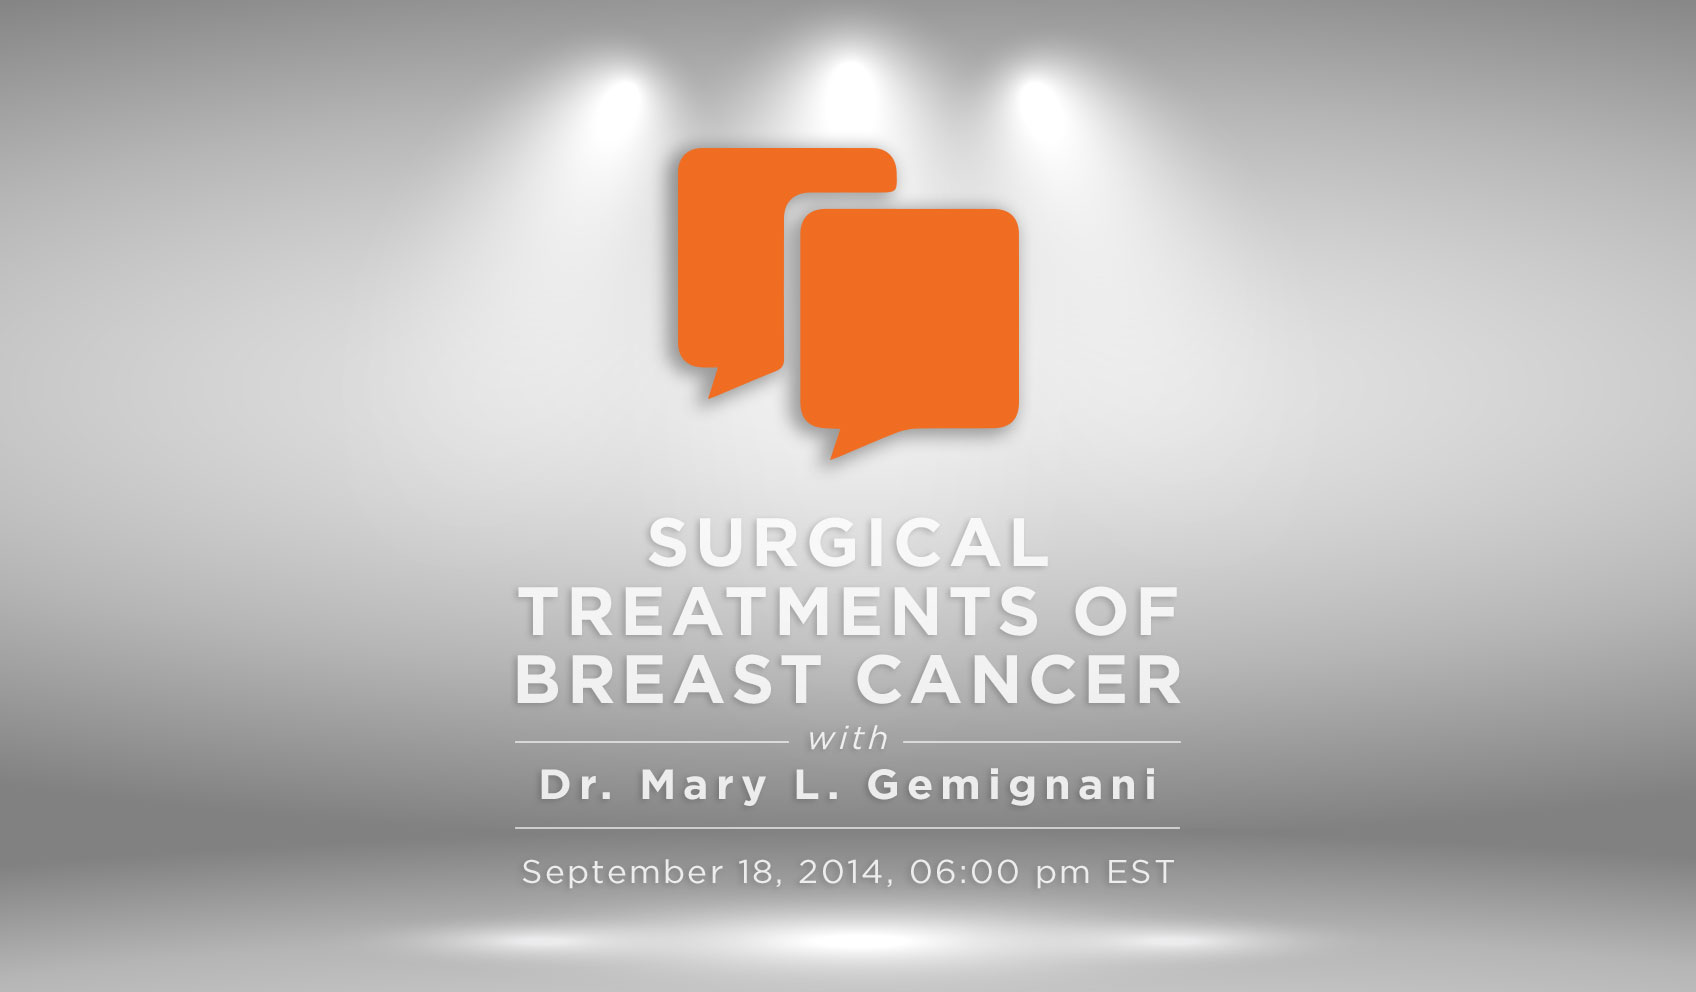 Surgical Treatments of Breast Cancer with Dr. Mary L. Gemignani of MSKCC